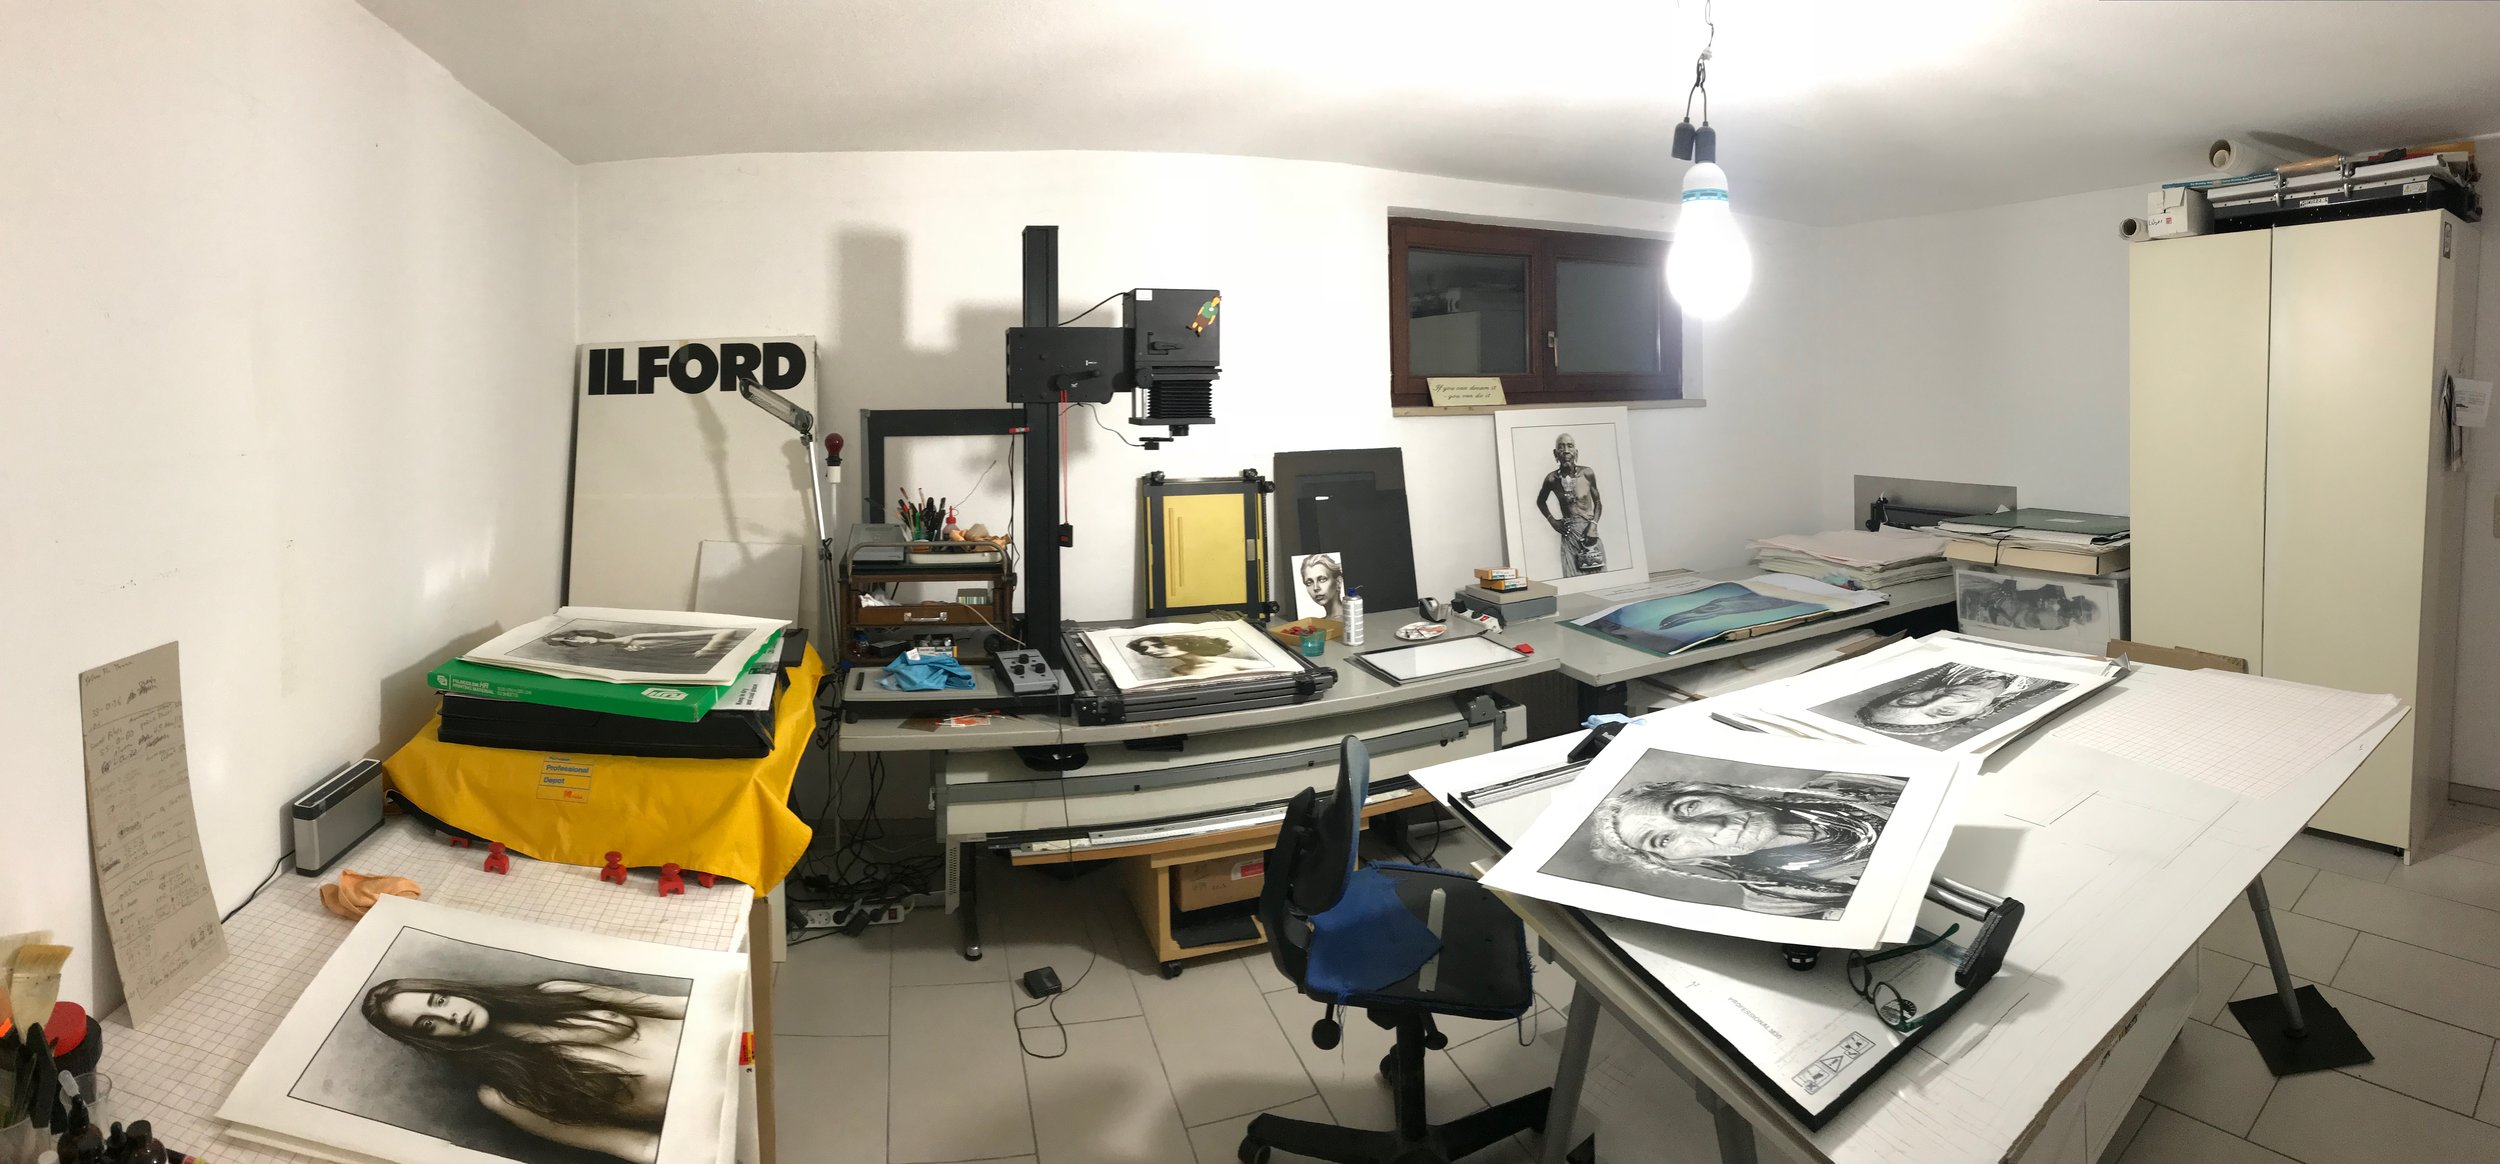 The darkroom, a creative space where everything is possible. You can also rent the darkroom.